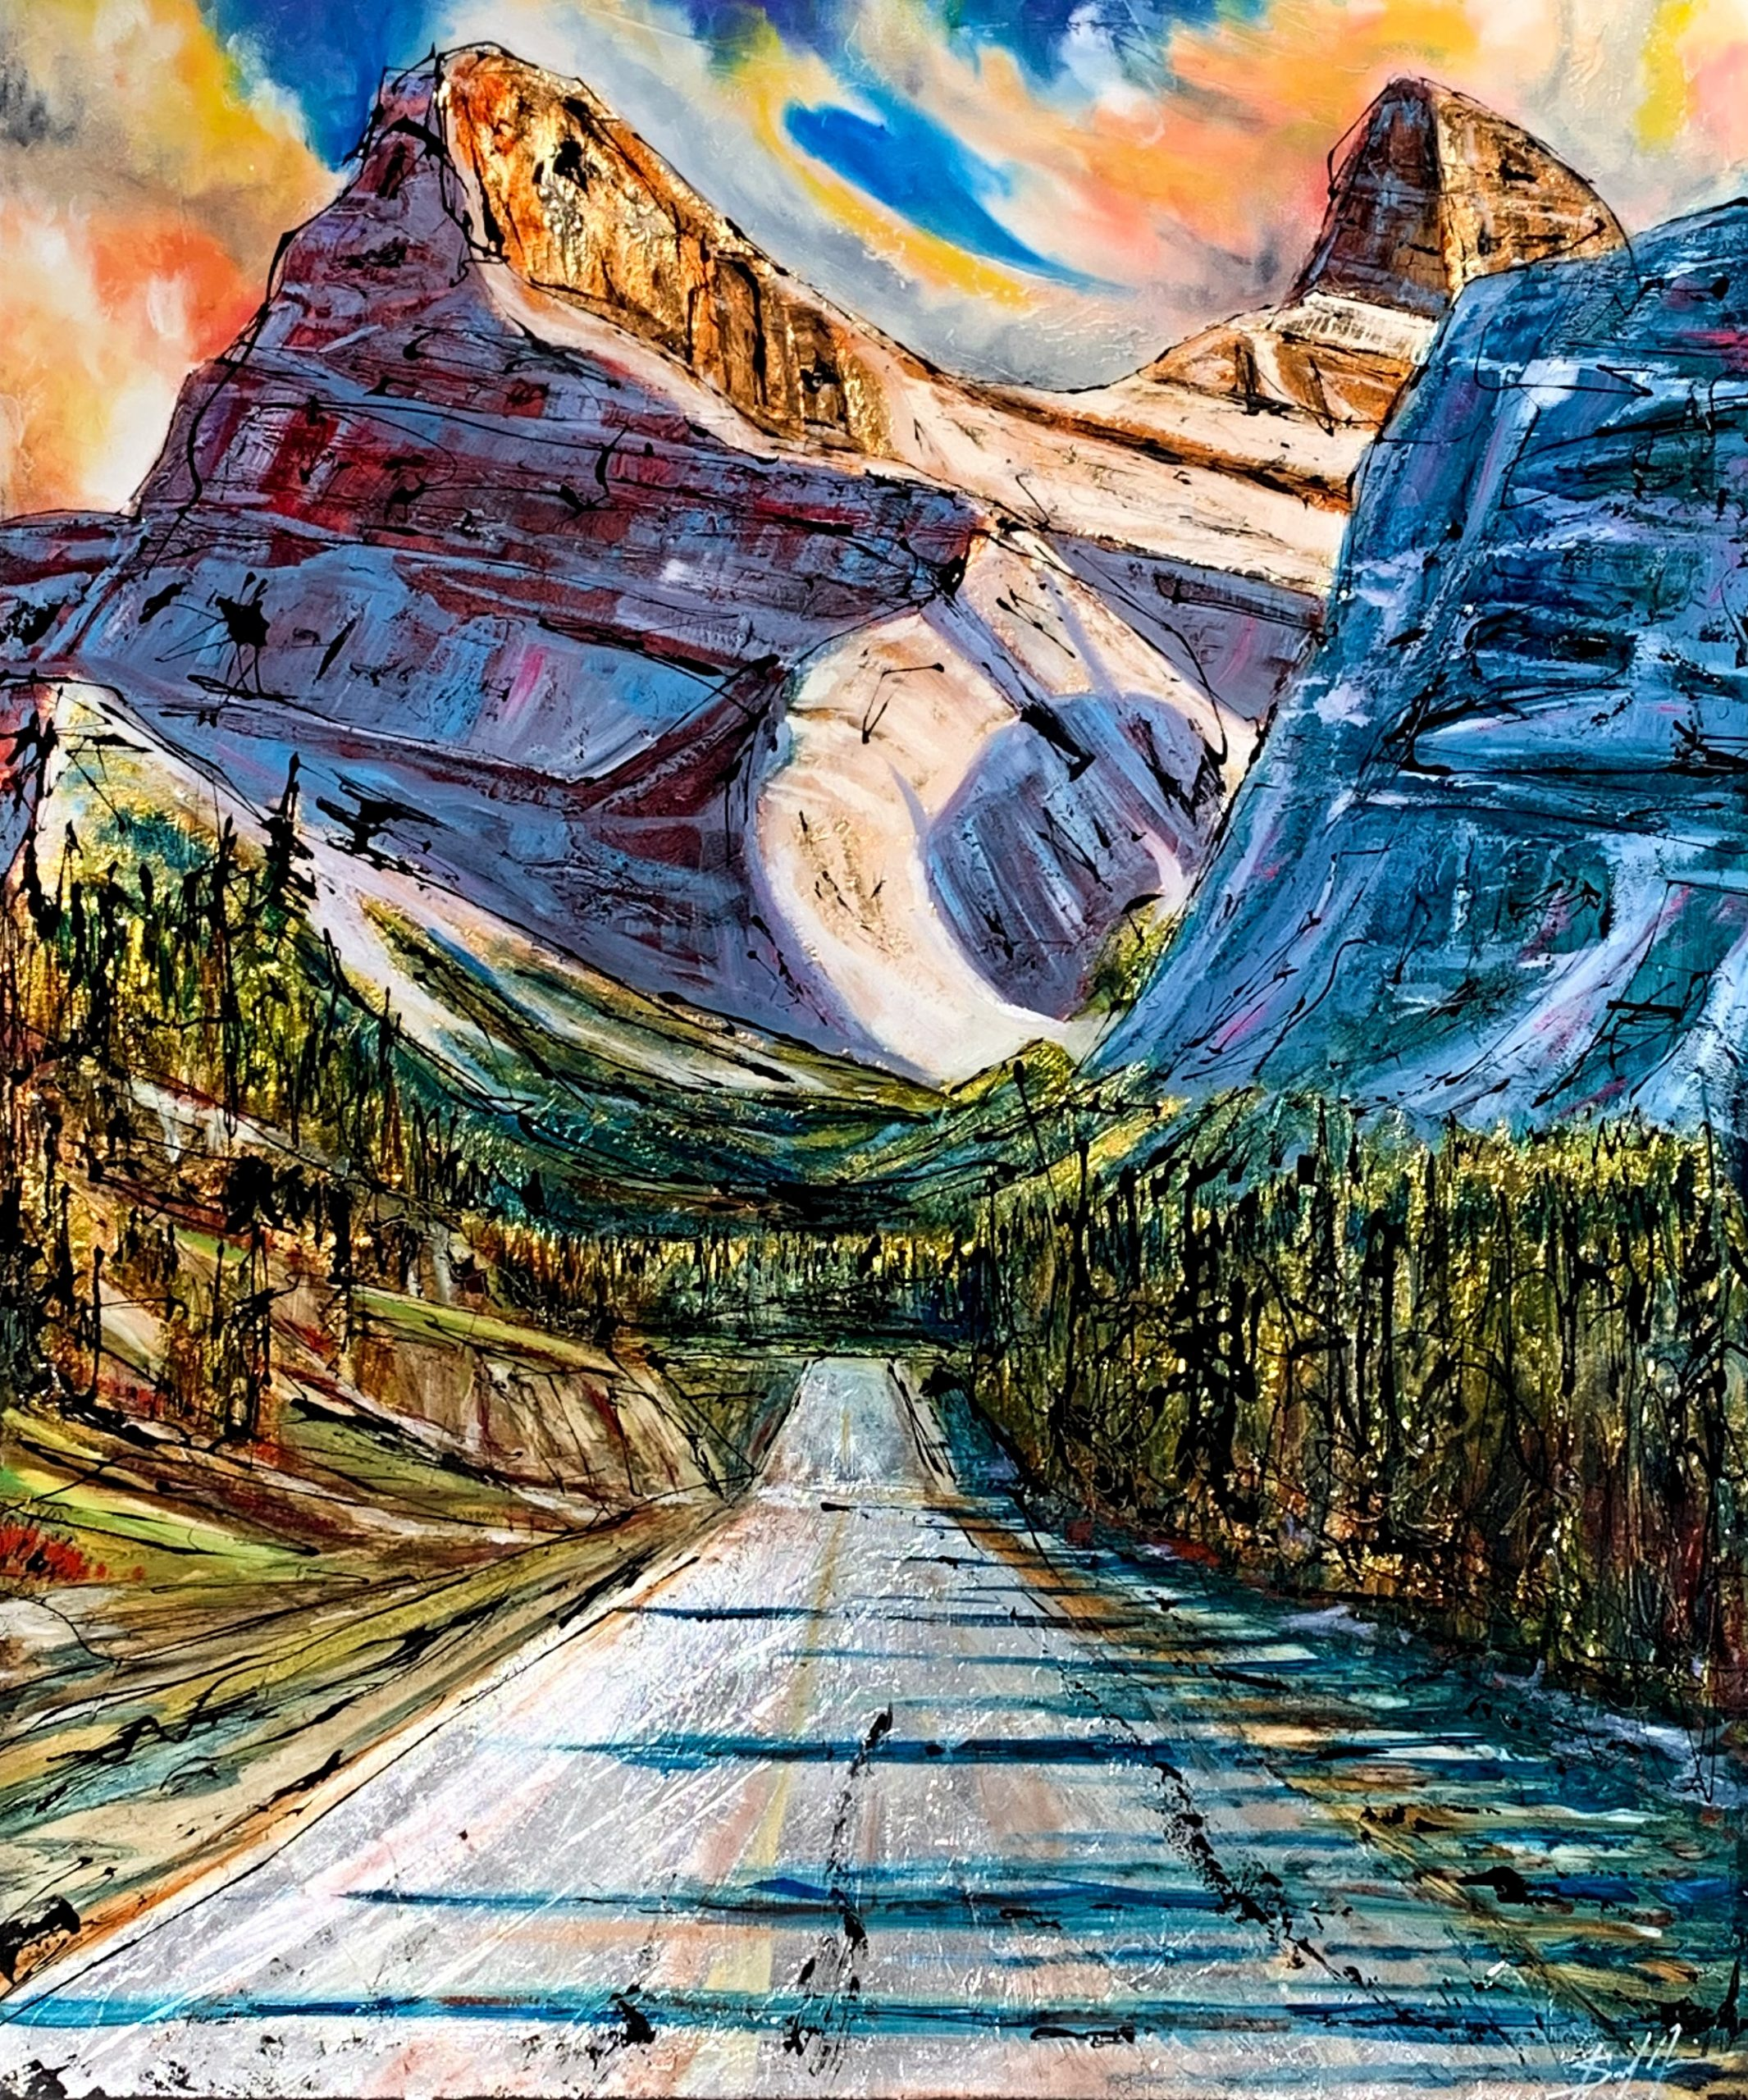 A Journey to Gold, mixed media landscape painting by David Zimmerman | Effusion Art Gallery + Cast Glass Studio, Invermere BC